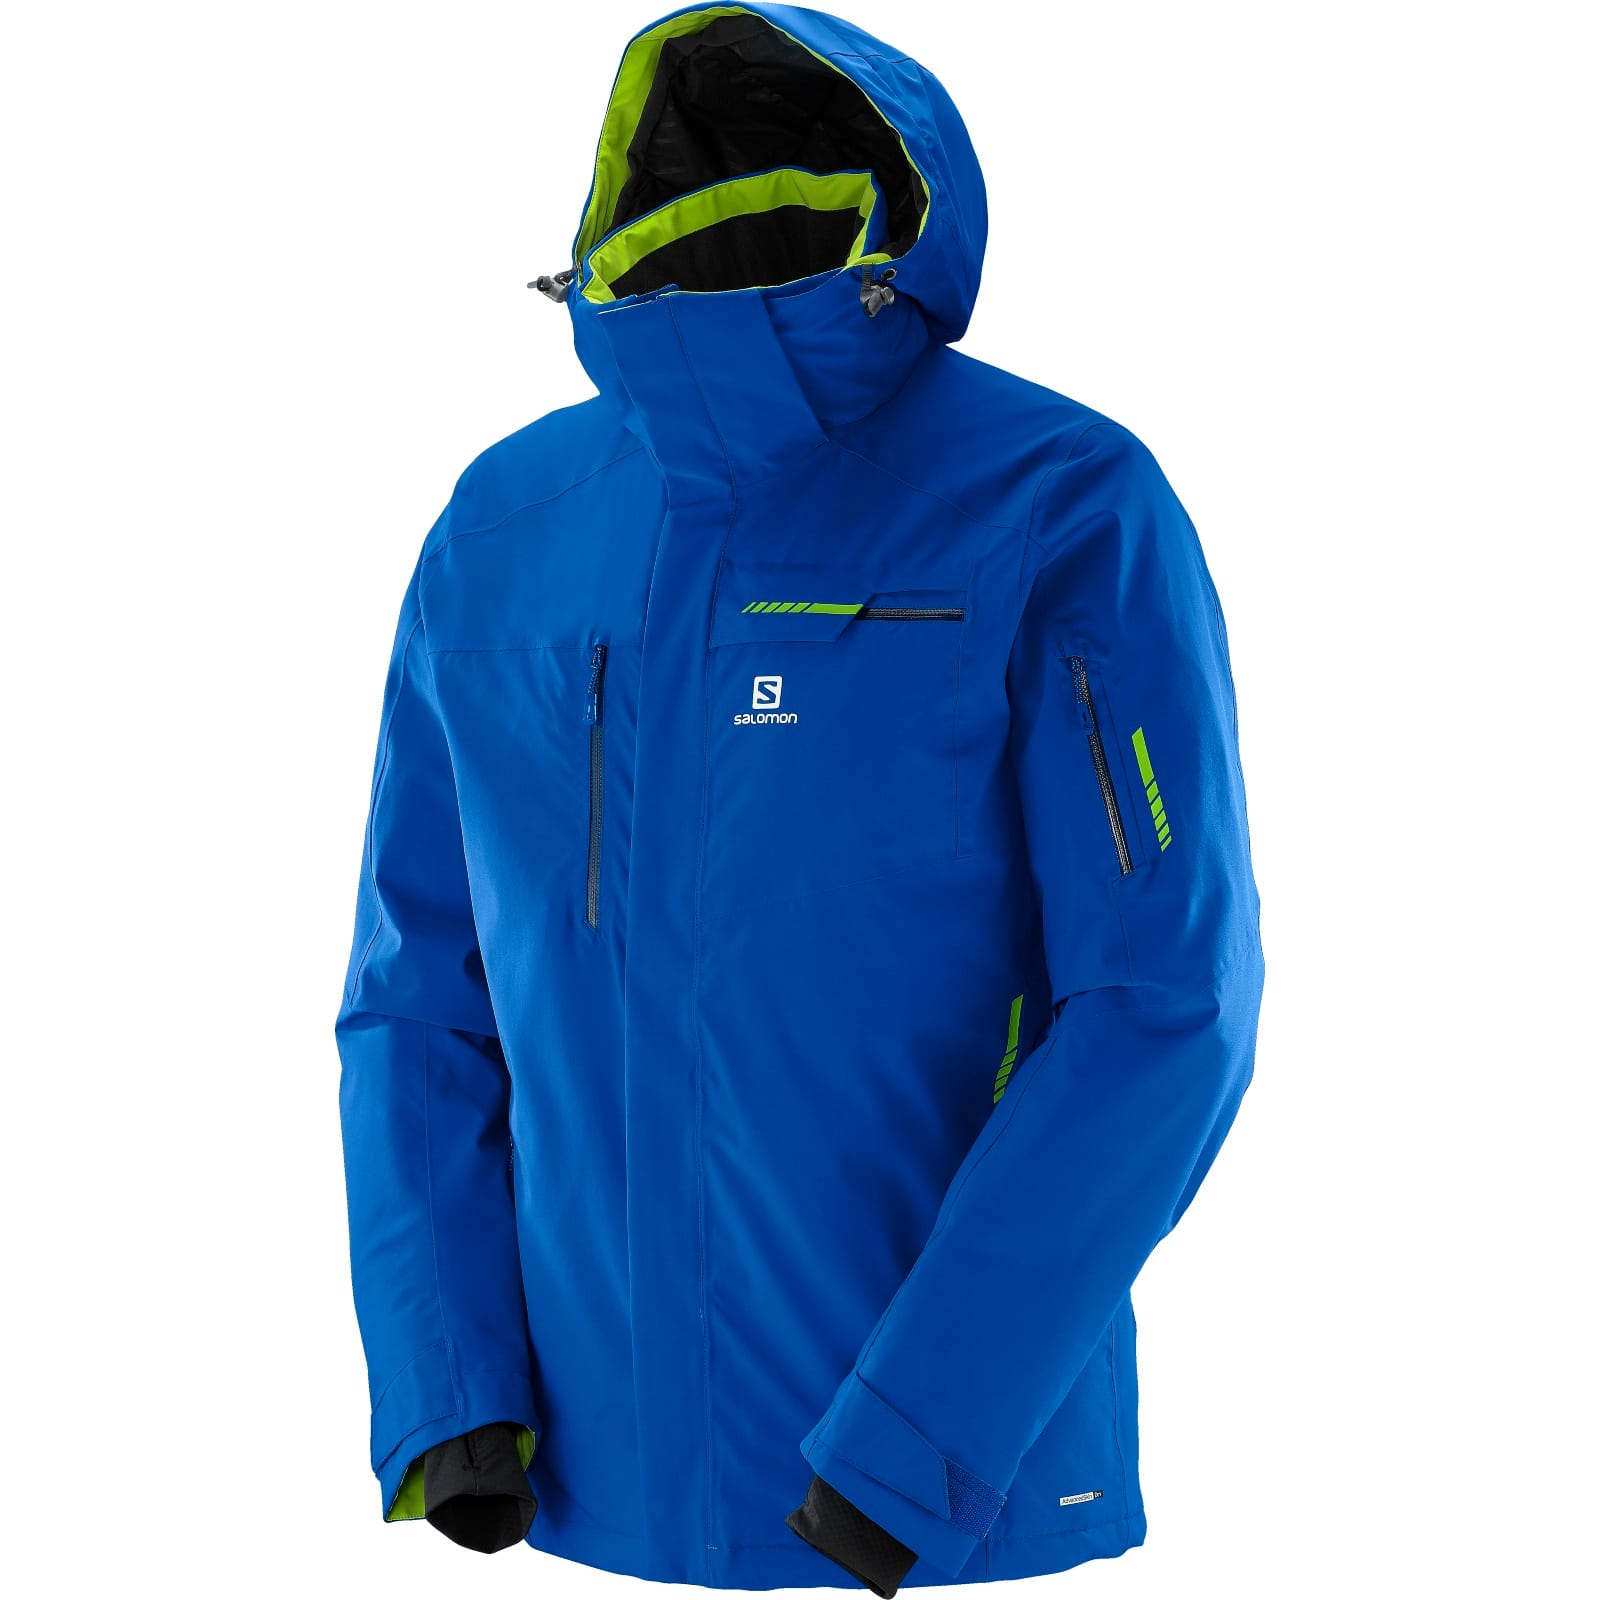 Salomon Salomon Jacke Jacke Jacke Brilliant Salomon Jacket